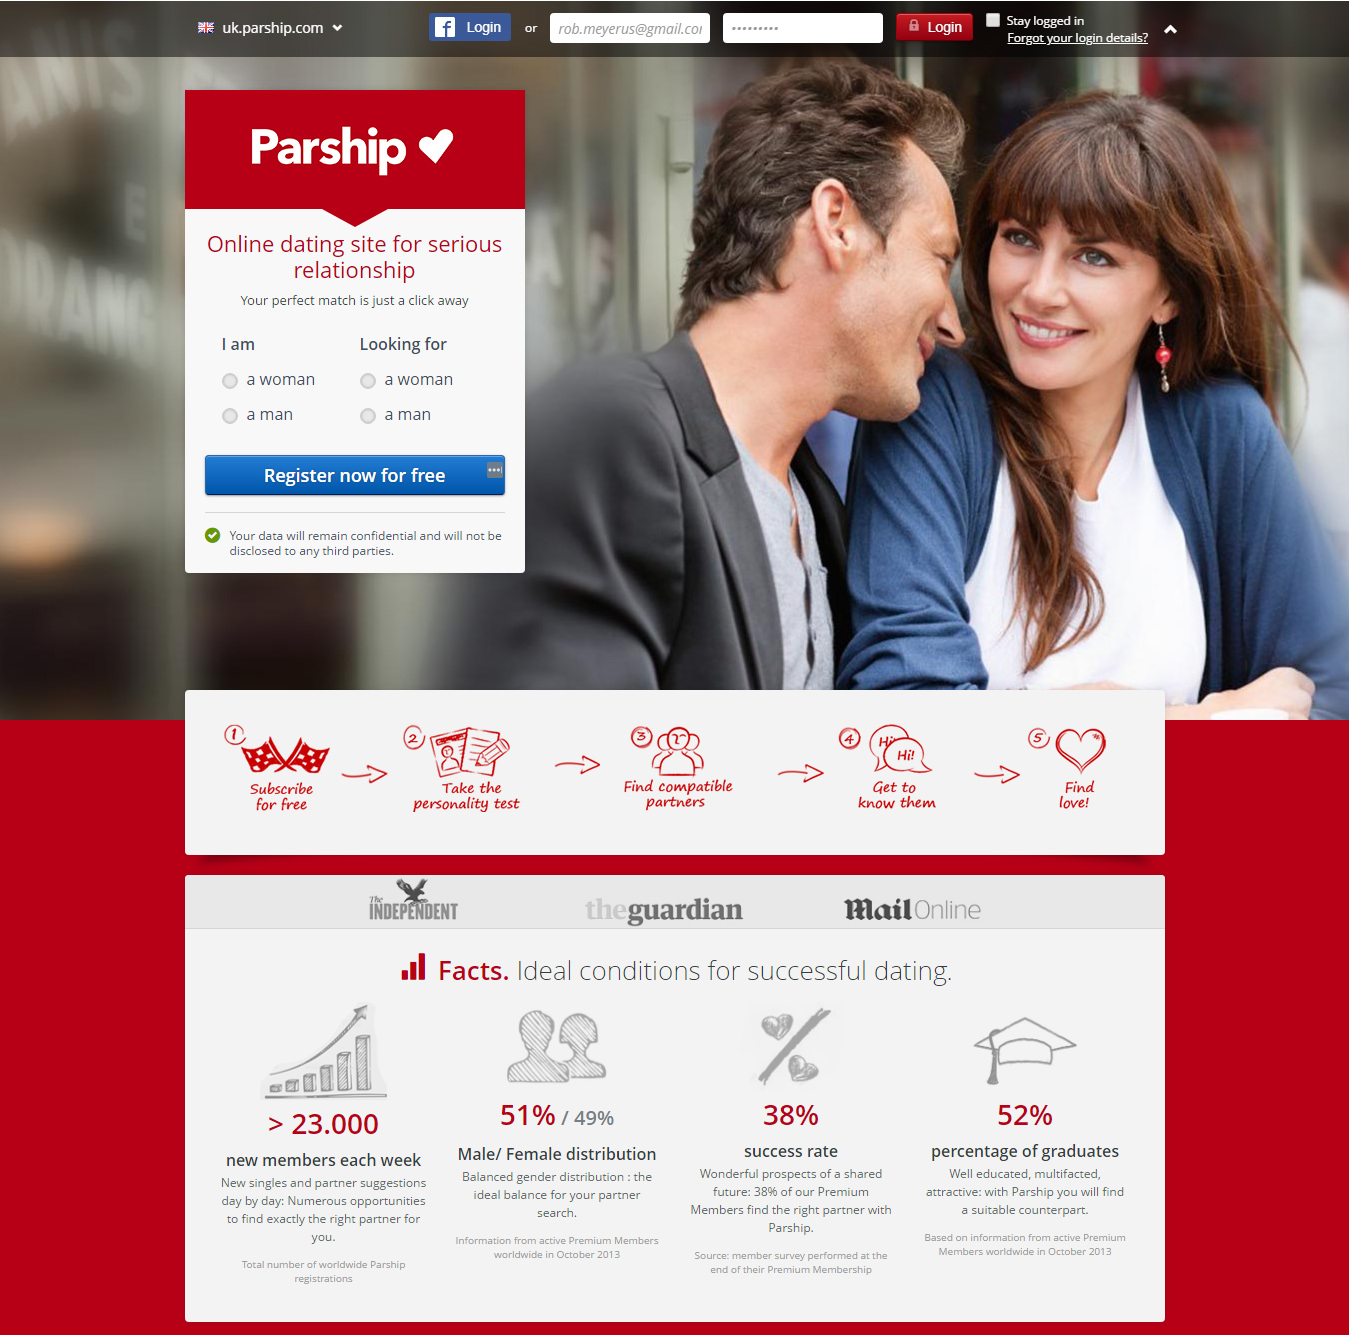 Dating site parship review online